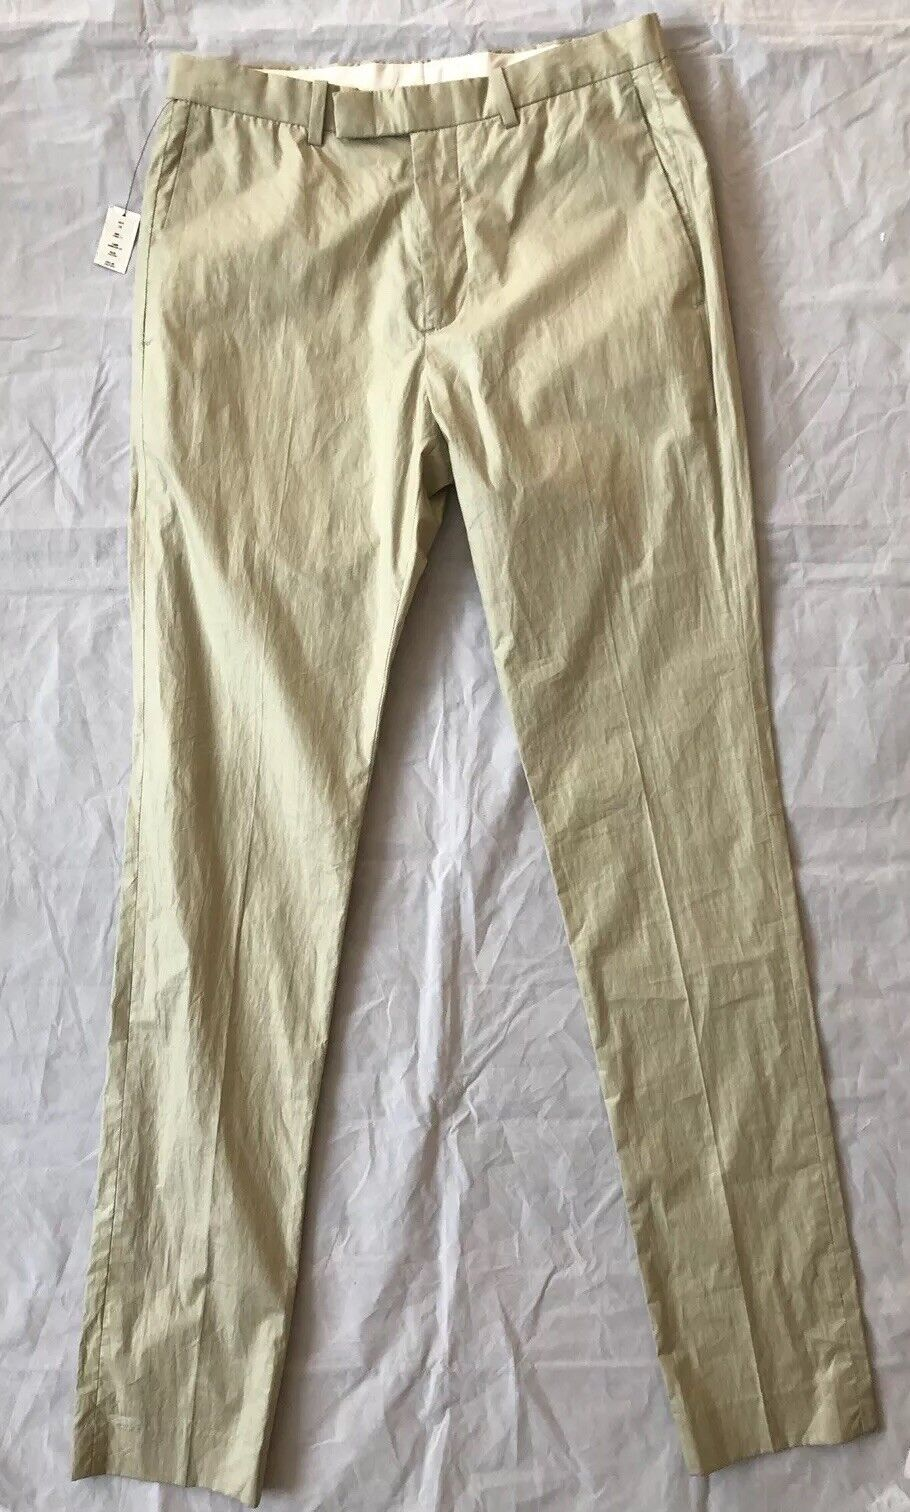 Theory Women's Zaine TT Bemison Cotton Pants Size 28  NWT